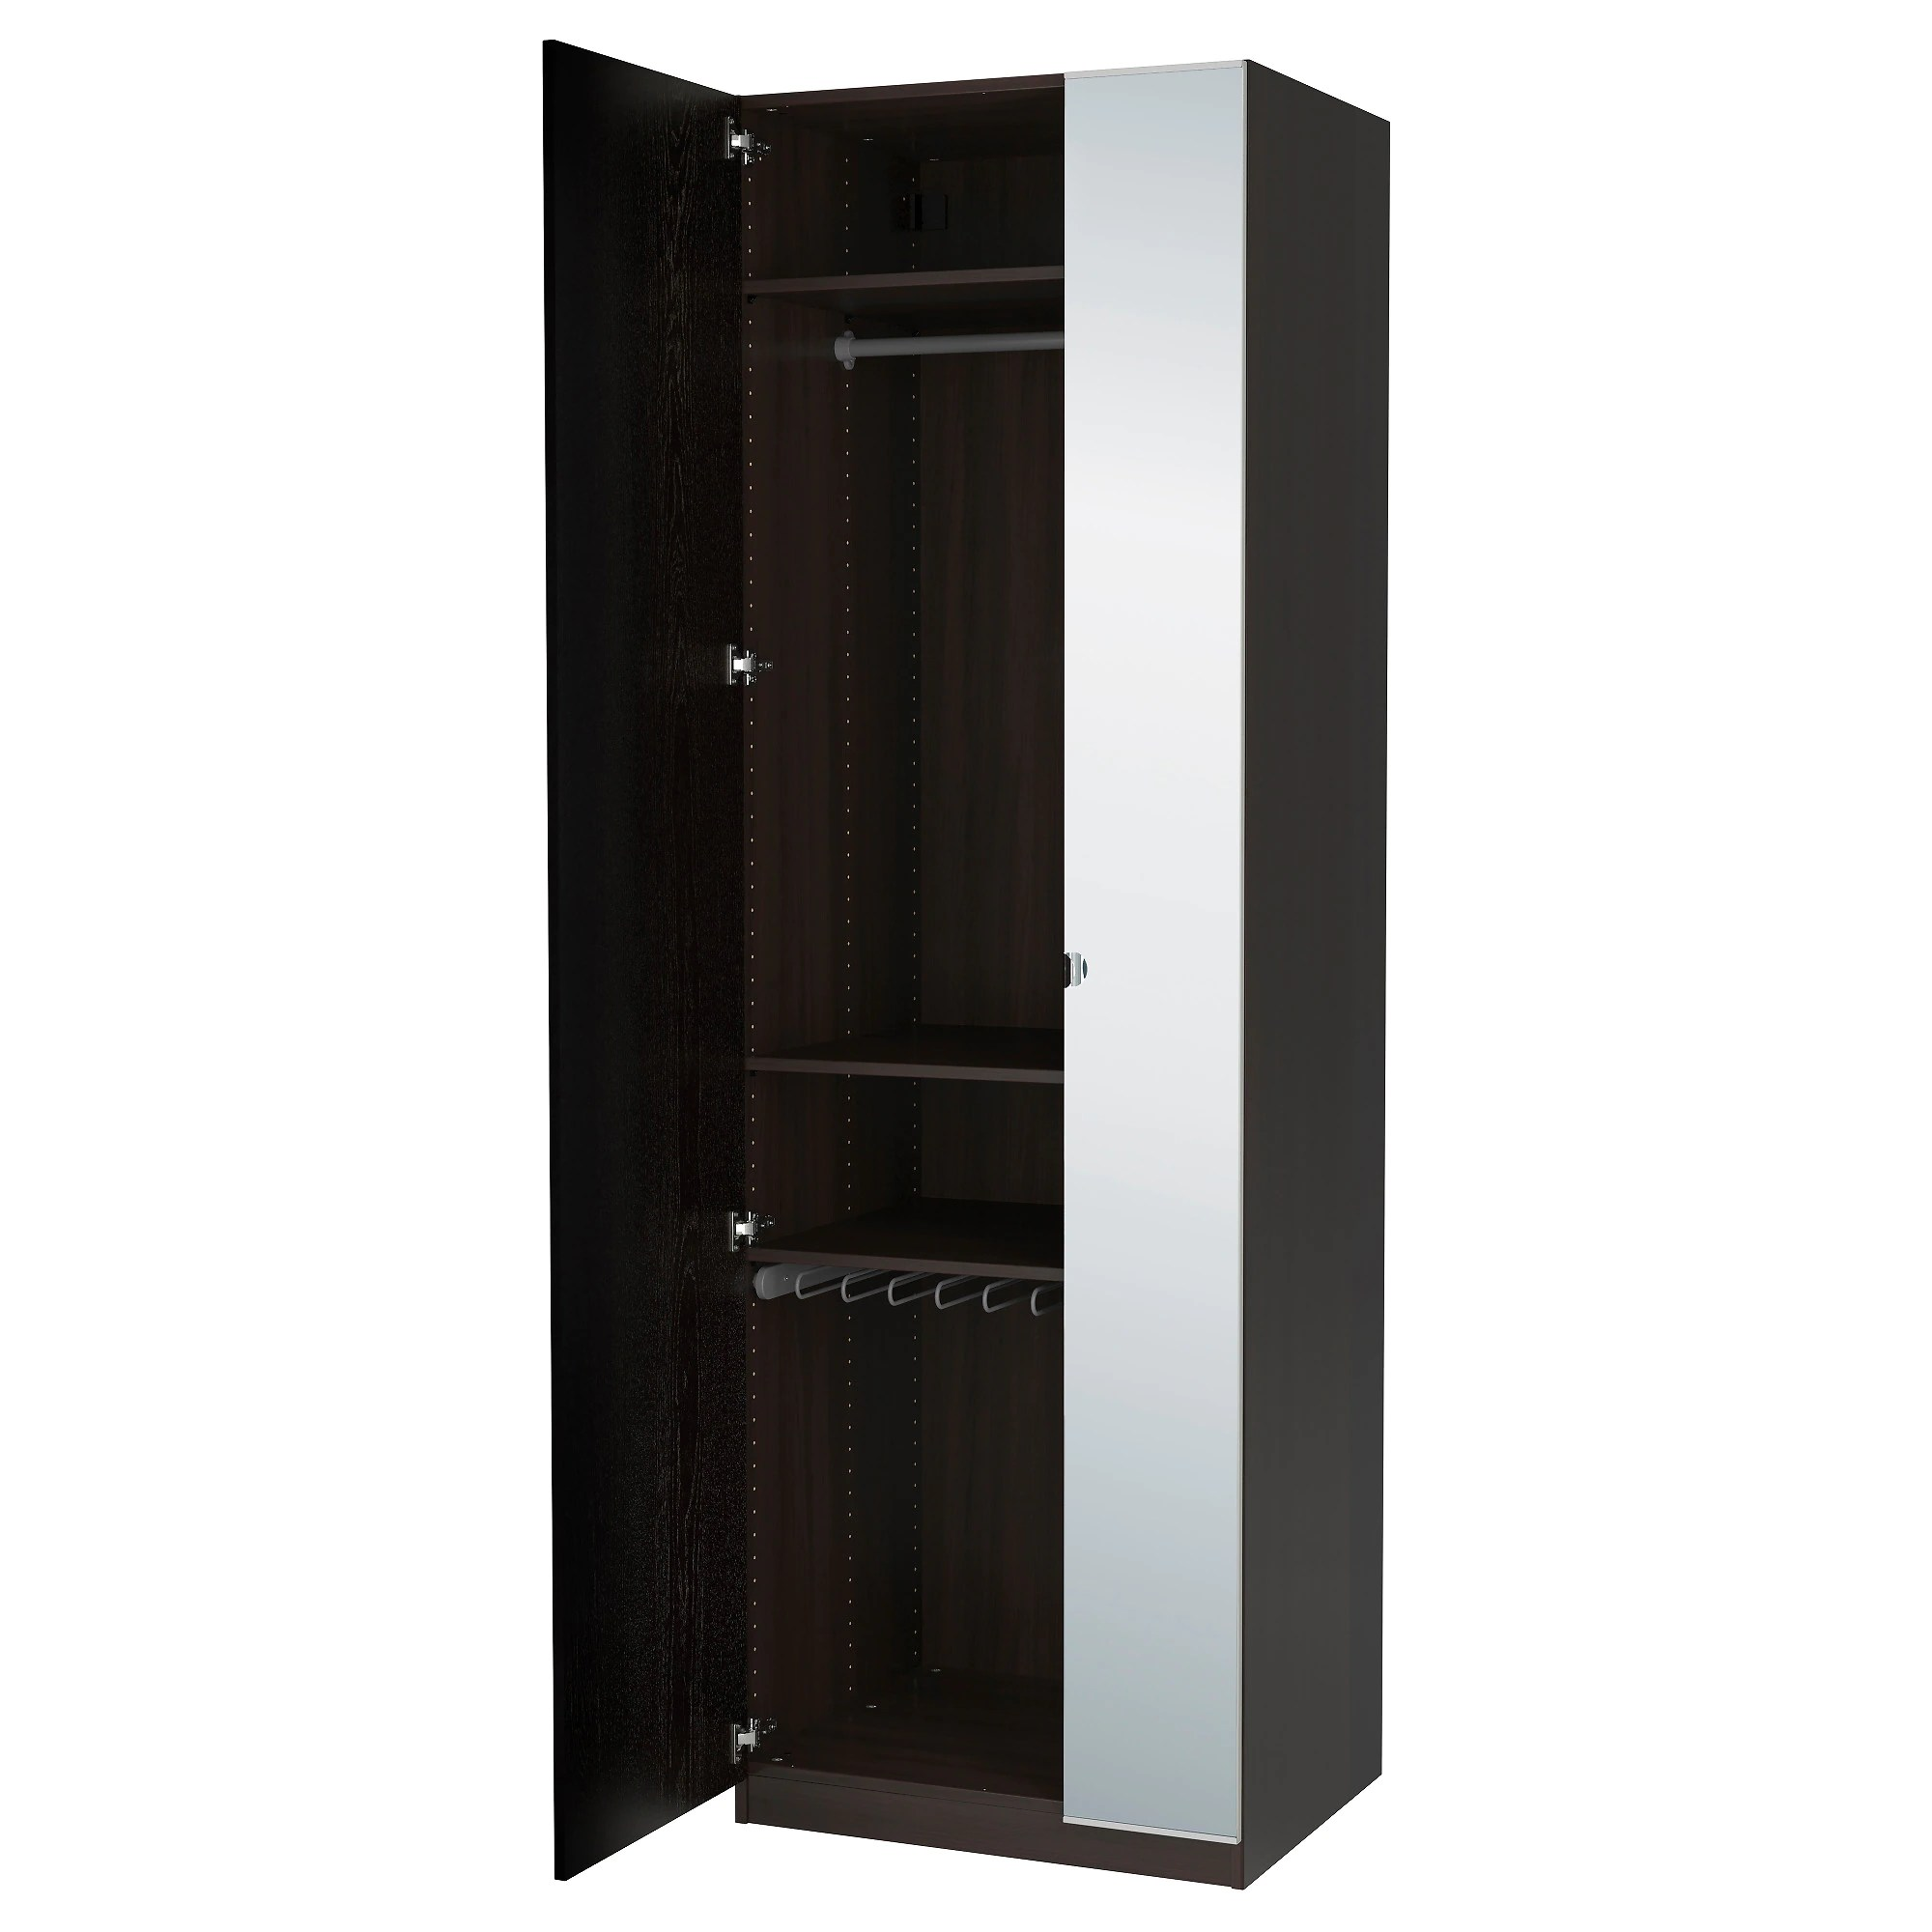 Ikea Schrank Code Pax Wardrobe Black Brown Nexus Vikedal